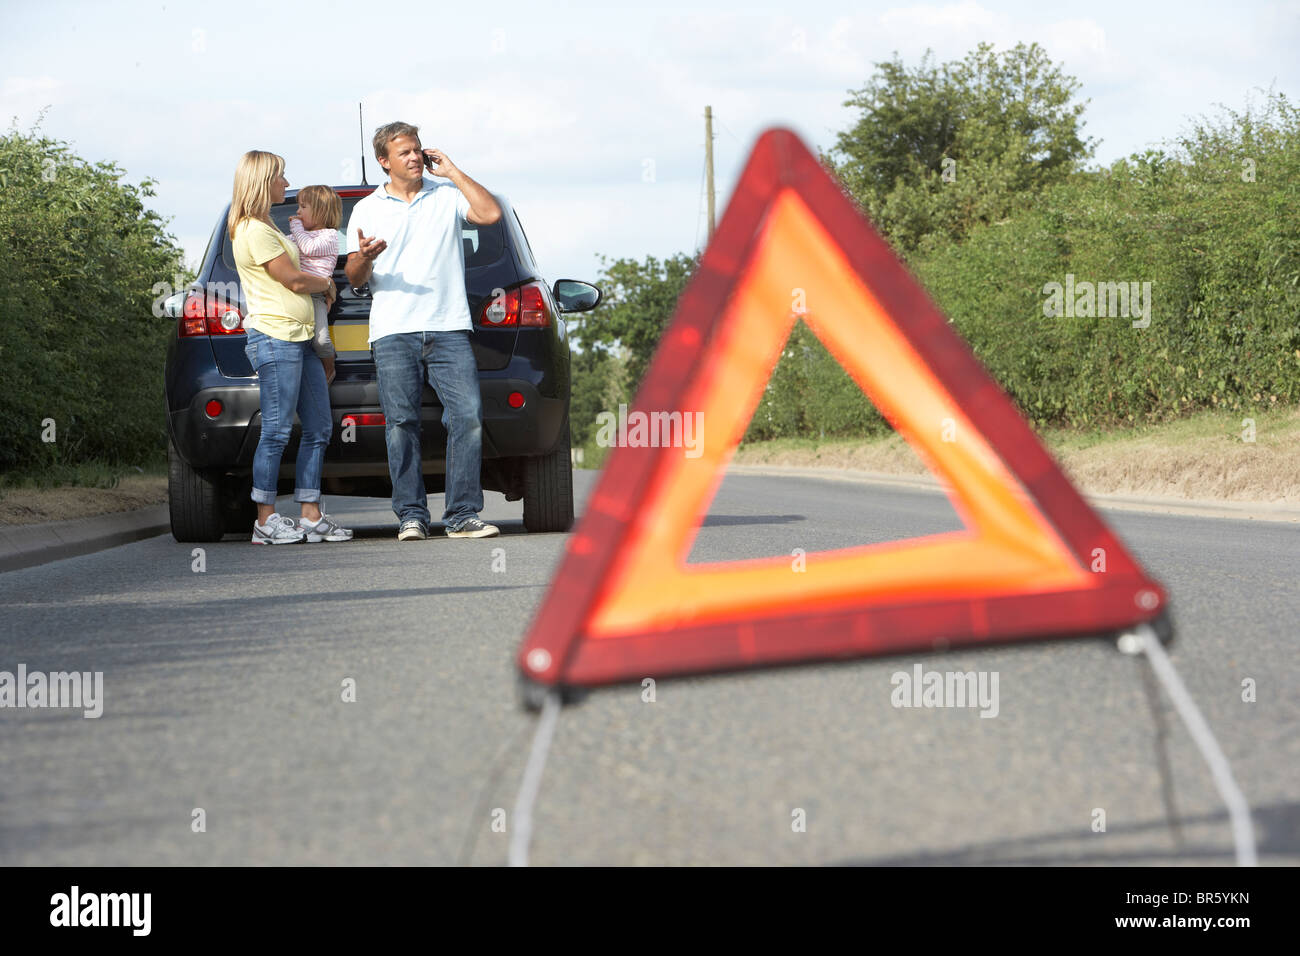 Family Broken Down On Country Road With Hazard Warning Sign In Foreground - Stock Image